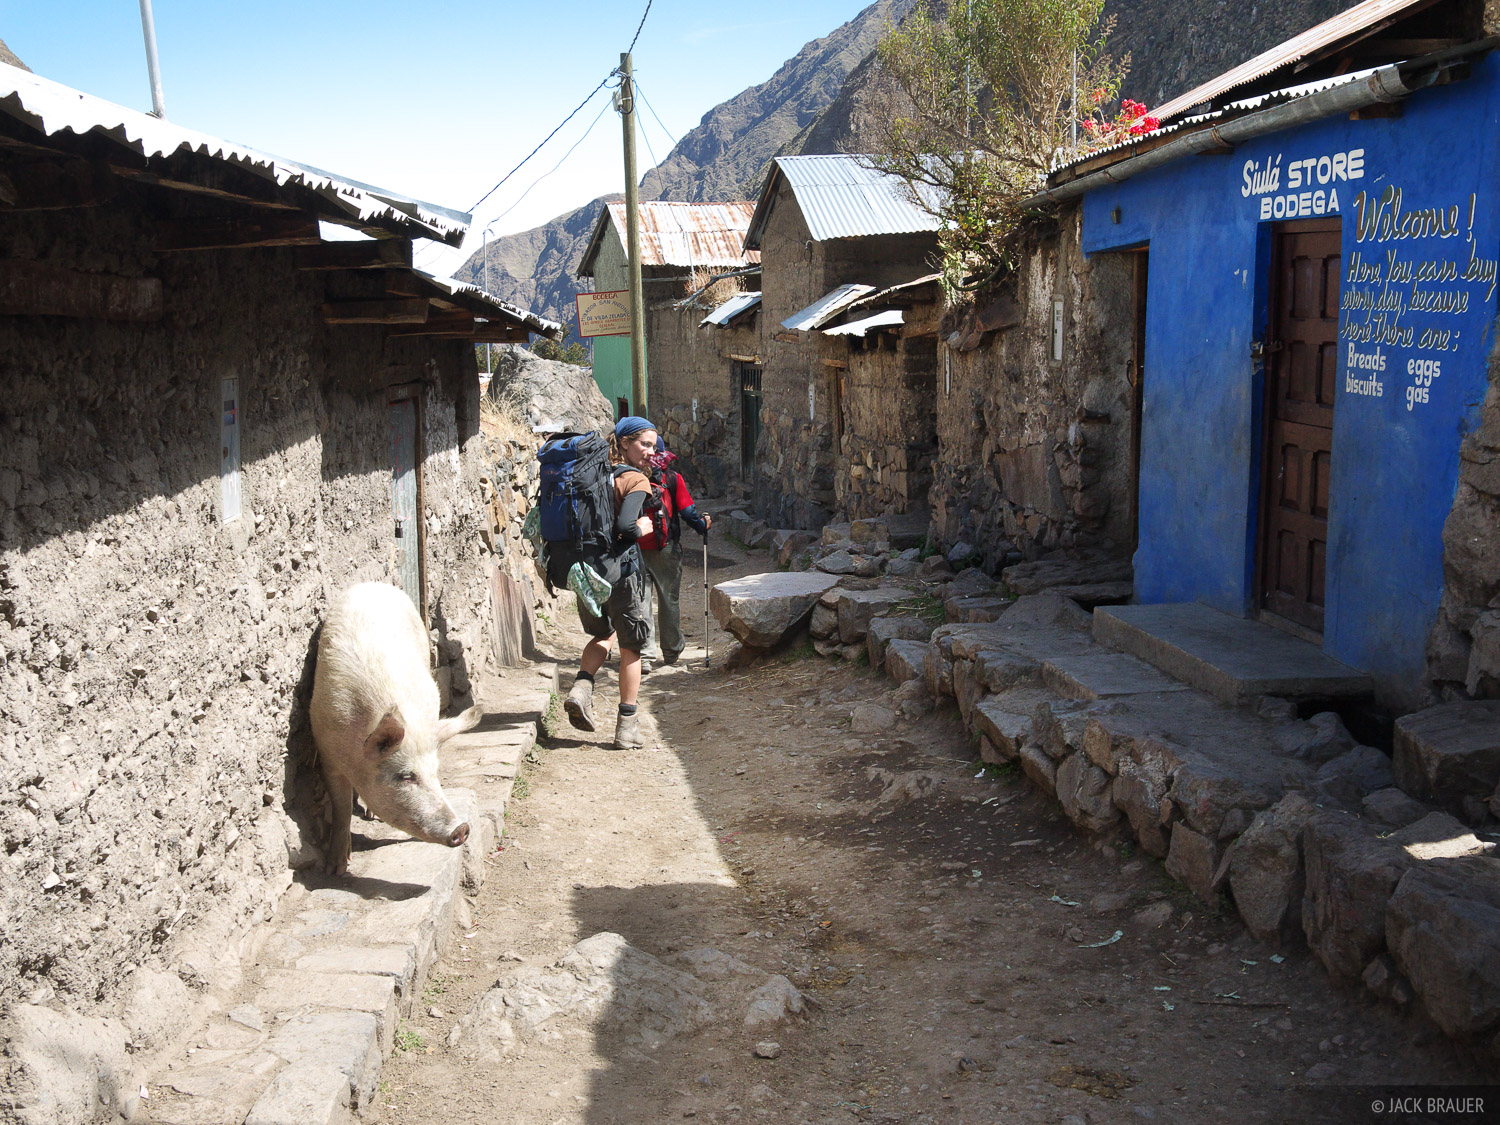 A resident pig in the village of Huayllapa.